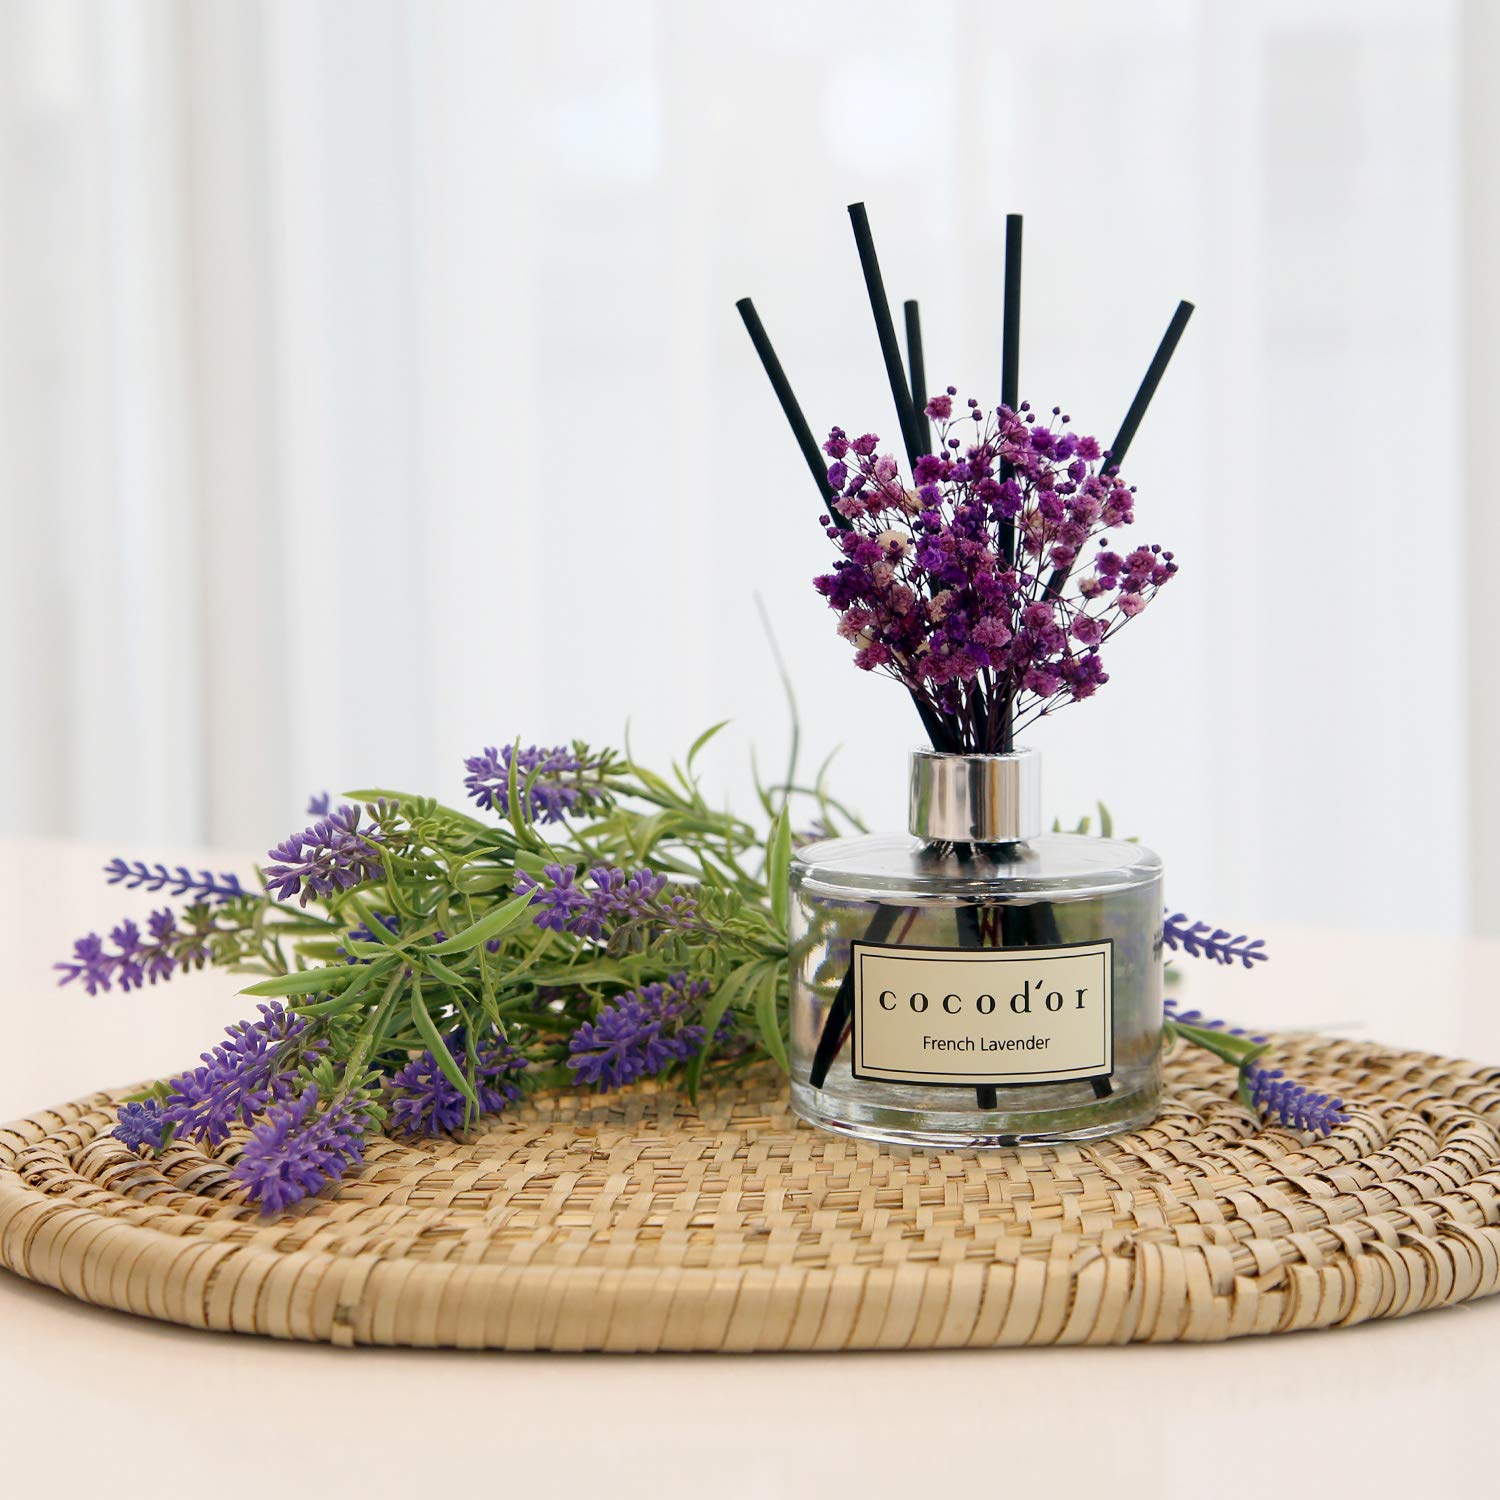 Cocod'or Flower Diffuser/6.7oz/Black Cherry/2 Pack by Cocod'or (Image #5)